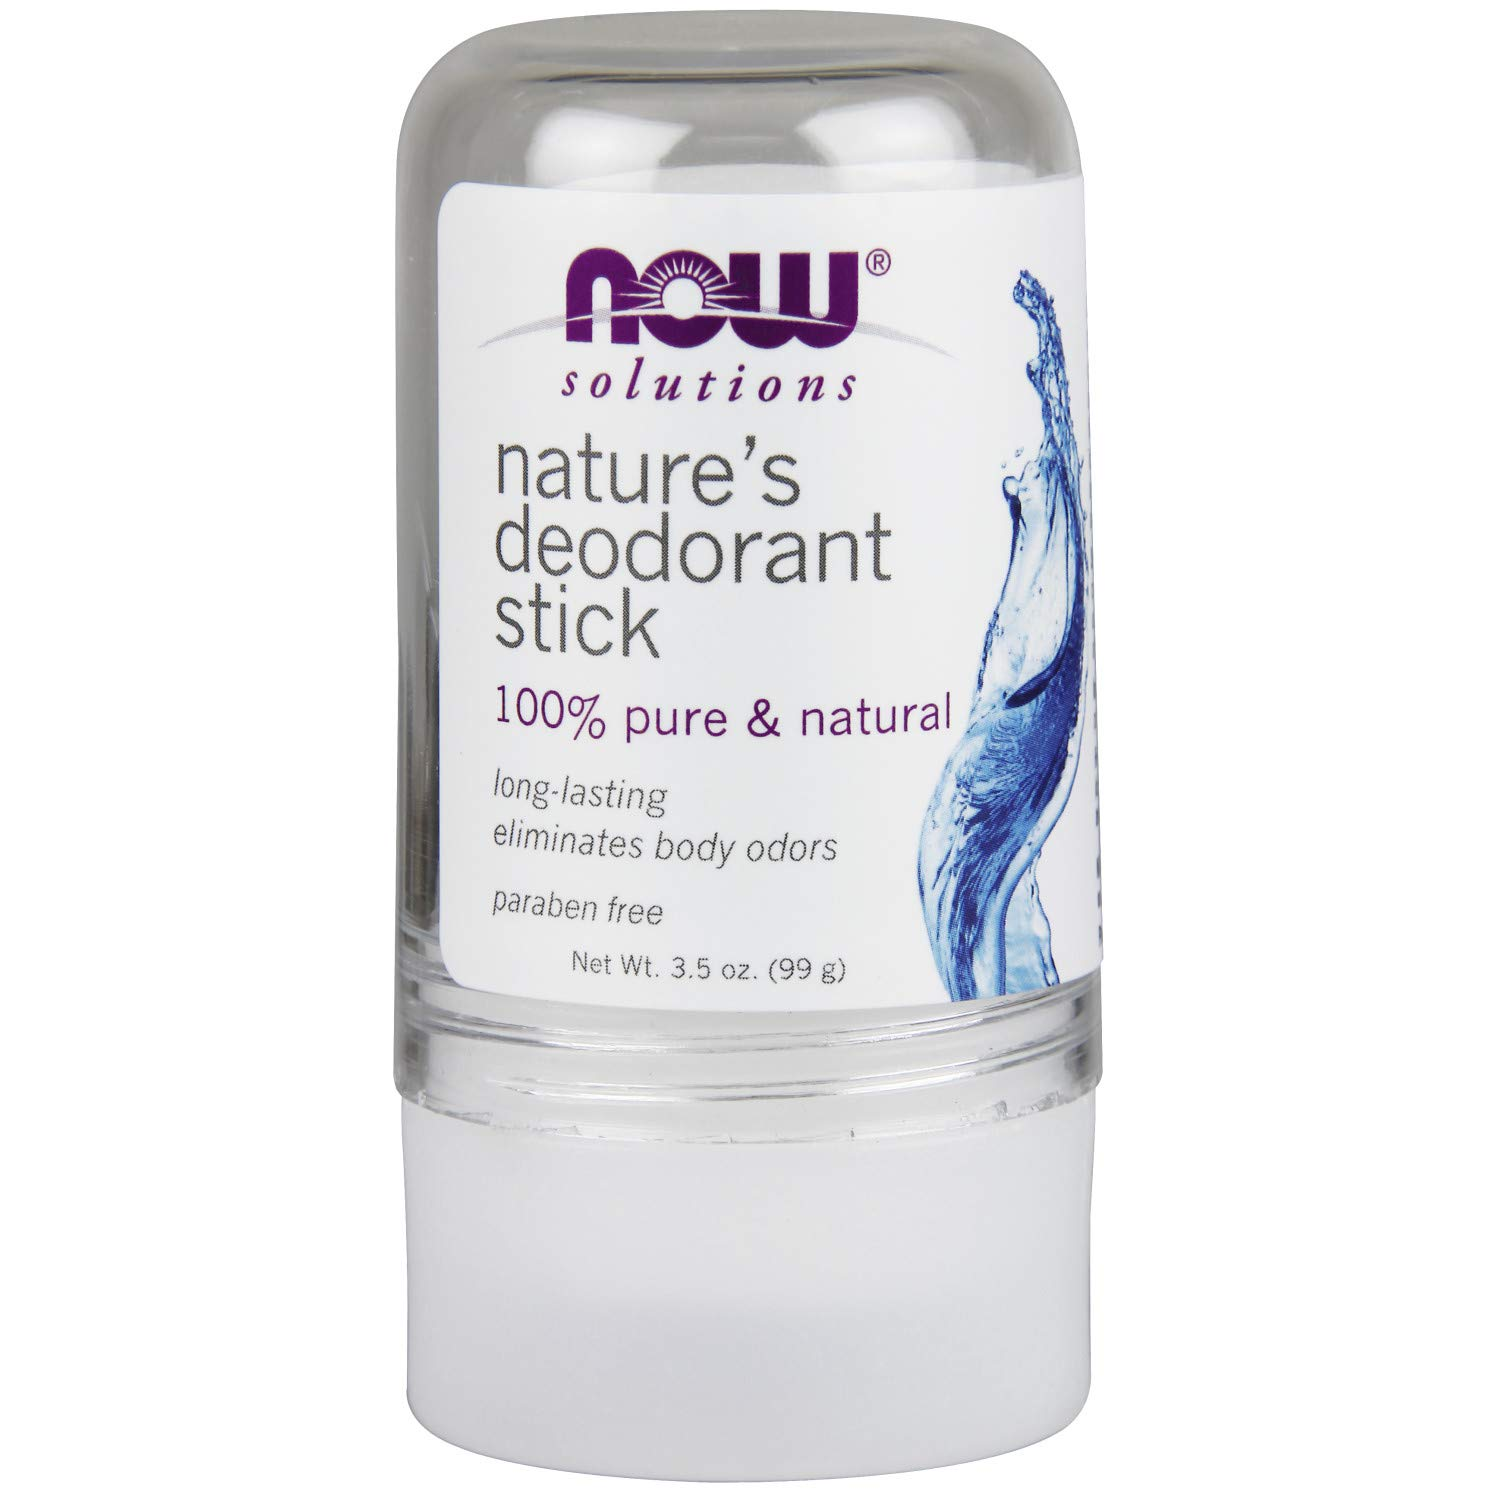 NOW Solutions, Nature's Deodorant Stick, Deodorant Stone, 100% Pure and Natural, Long-Lasting Body Odor Elimination, 3.5 oz.